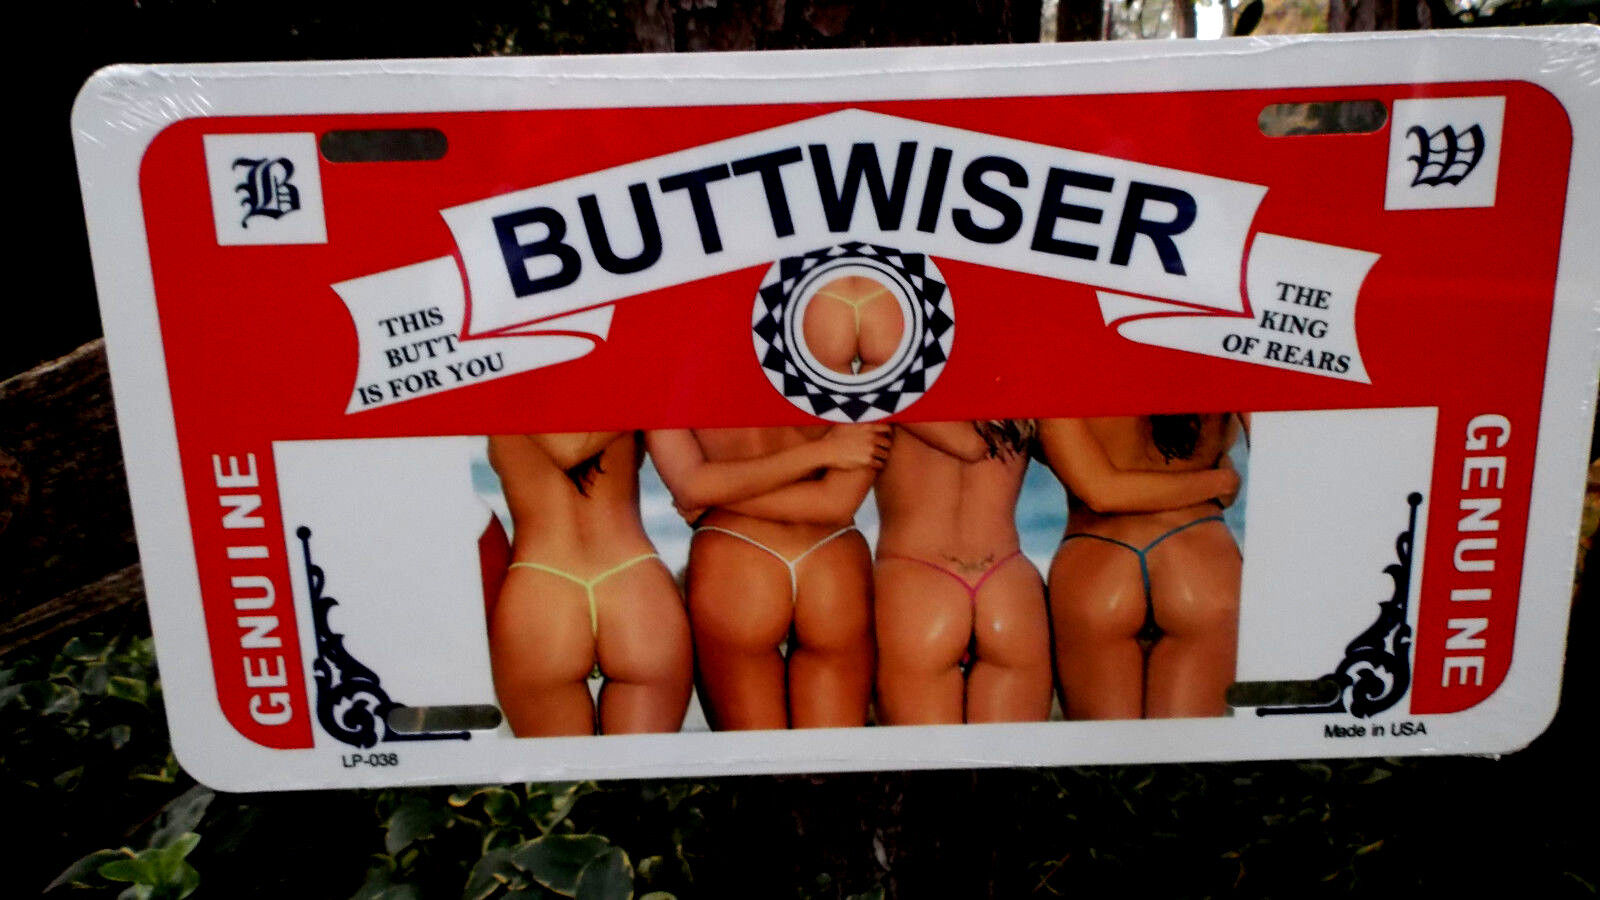 Budweiser Beer Buttwiser Tag Novelty Advertising License Plates Collectible Tags